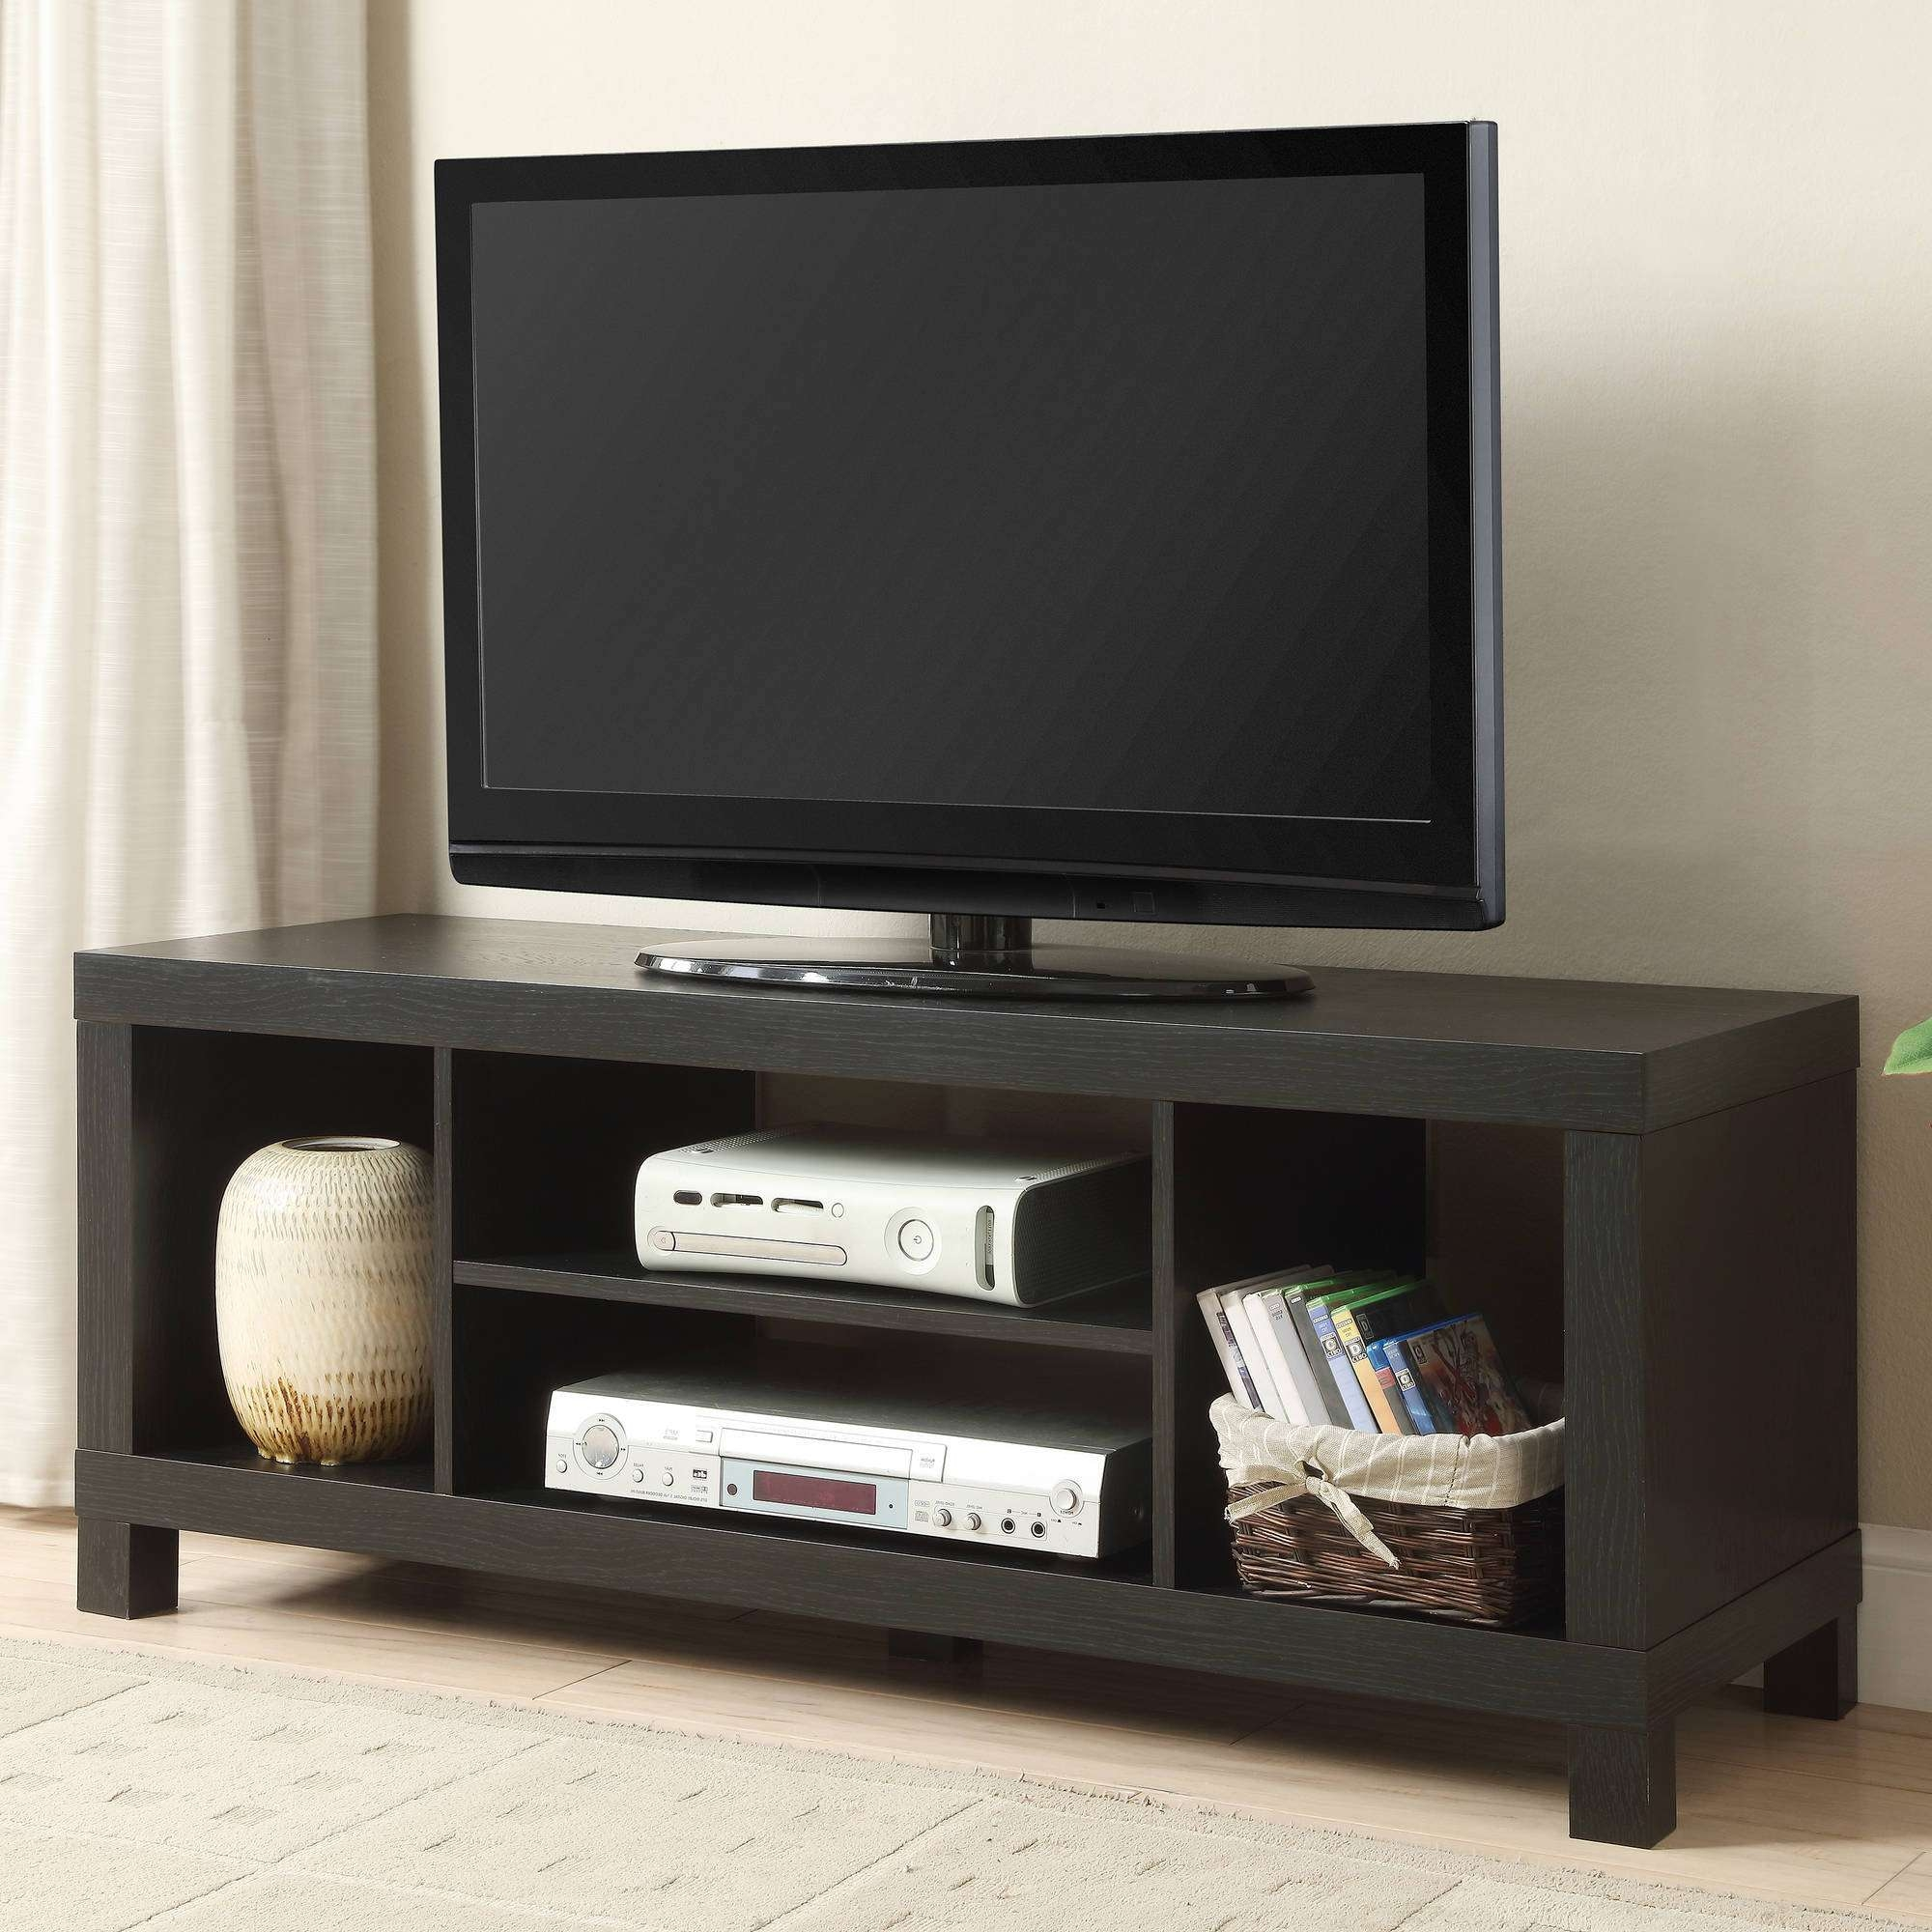 Tv Stands – Walmart With Tv Stands For 50 Inch Tvs (View 13 of 15)